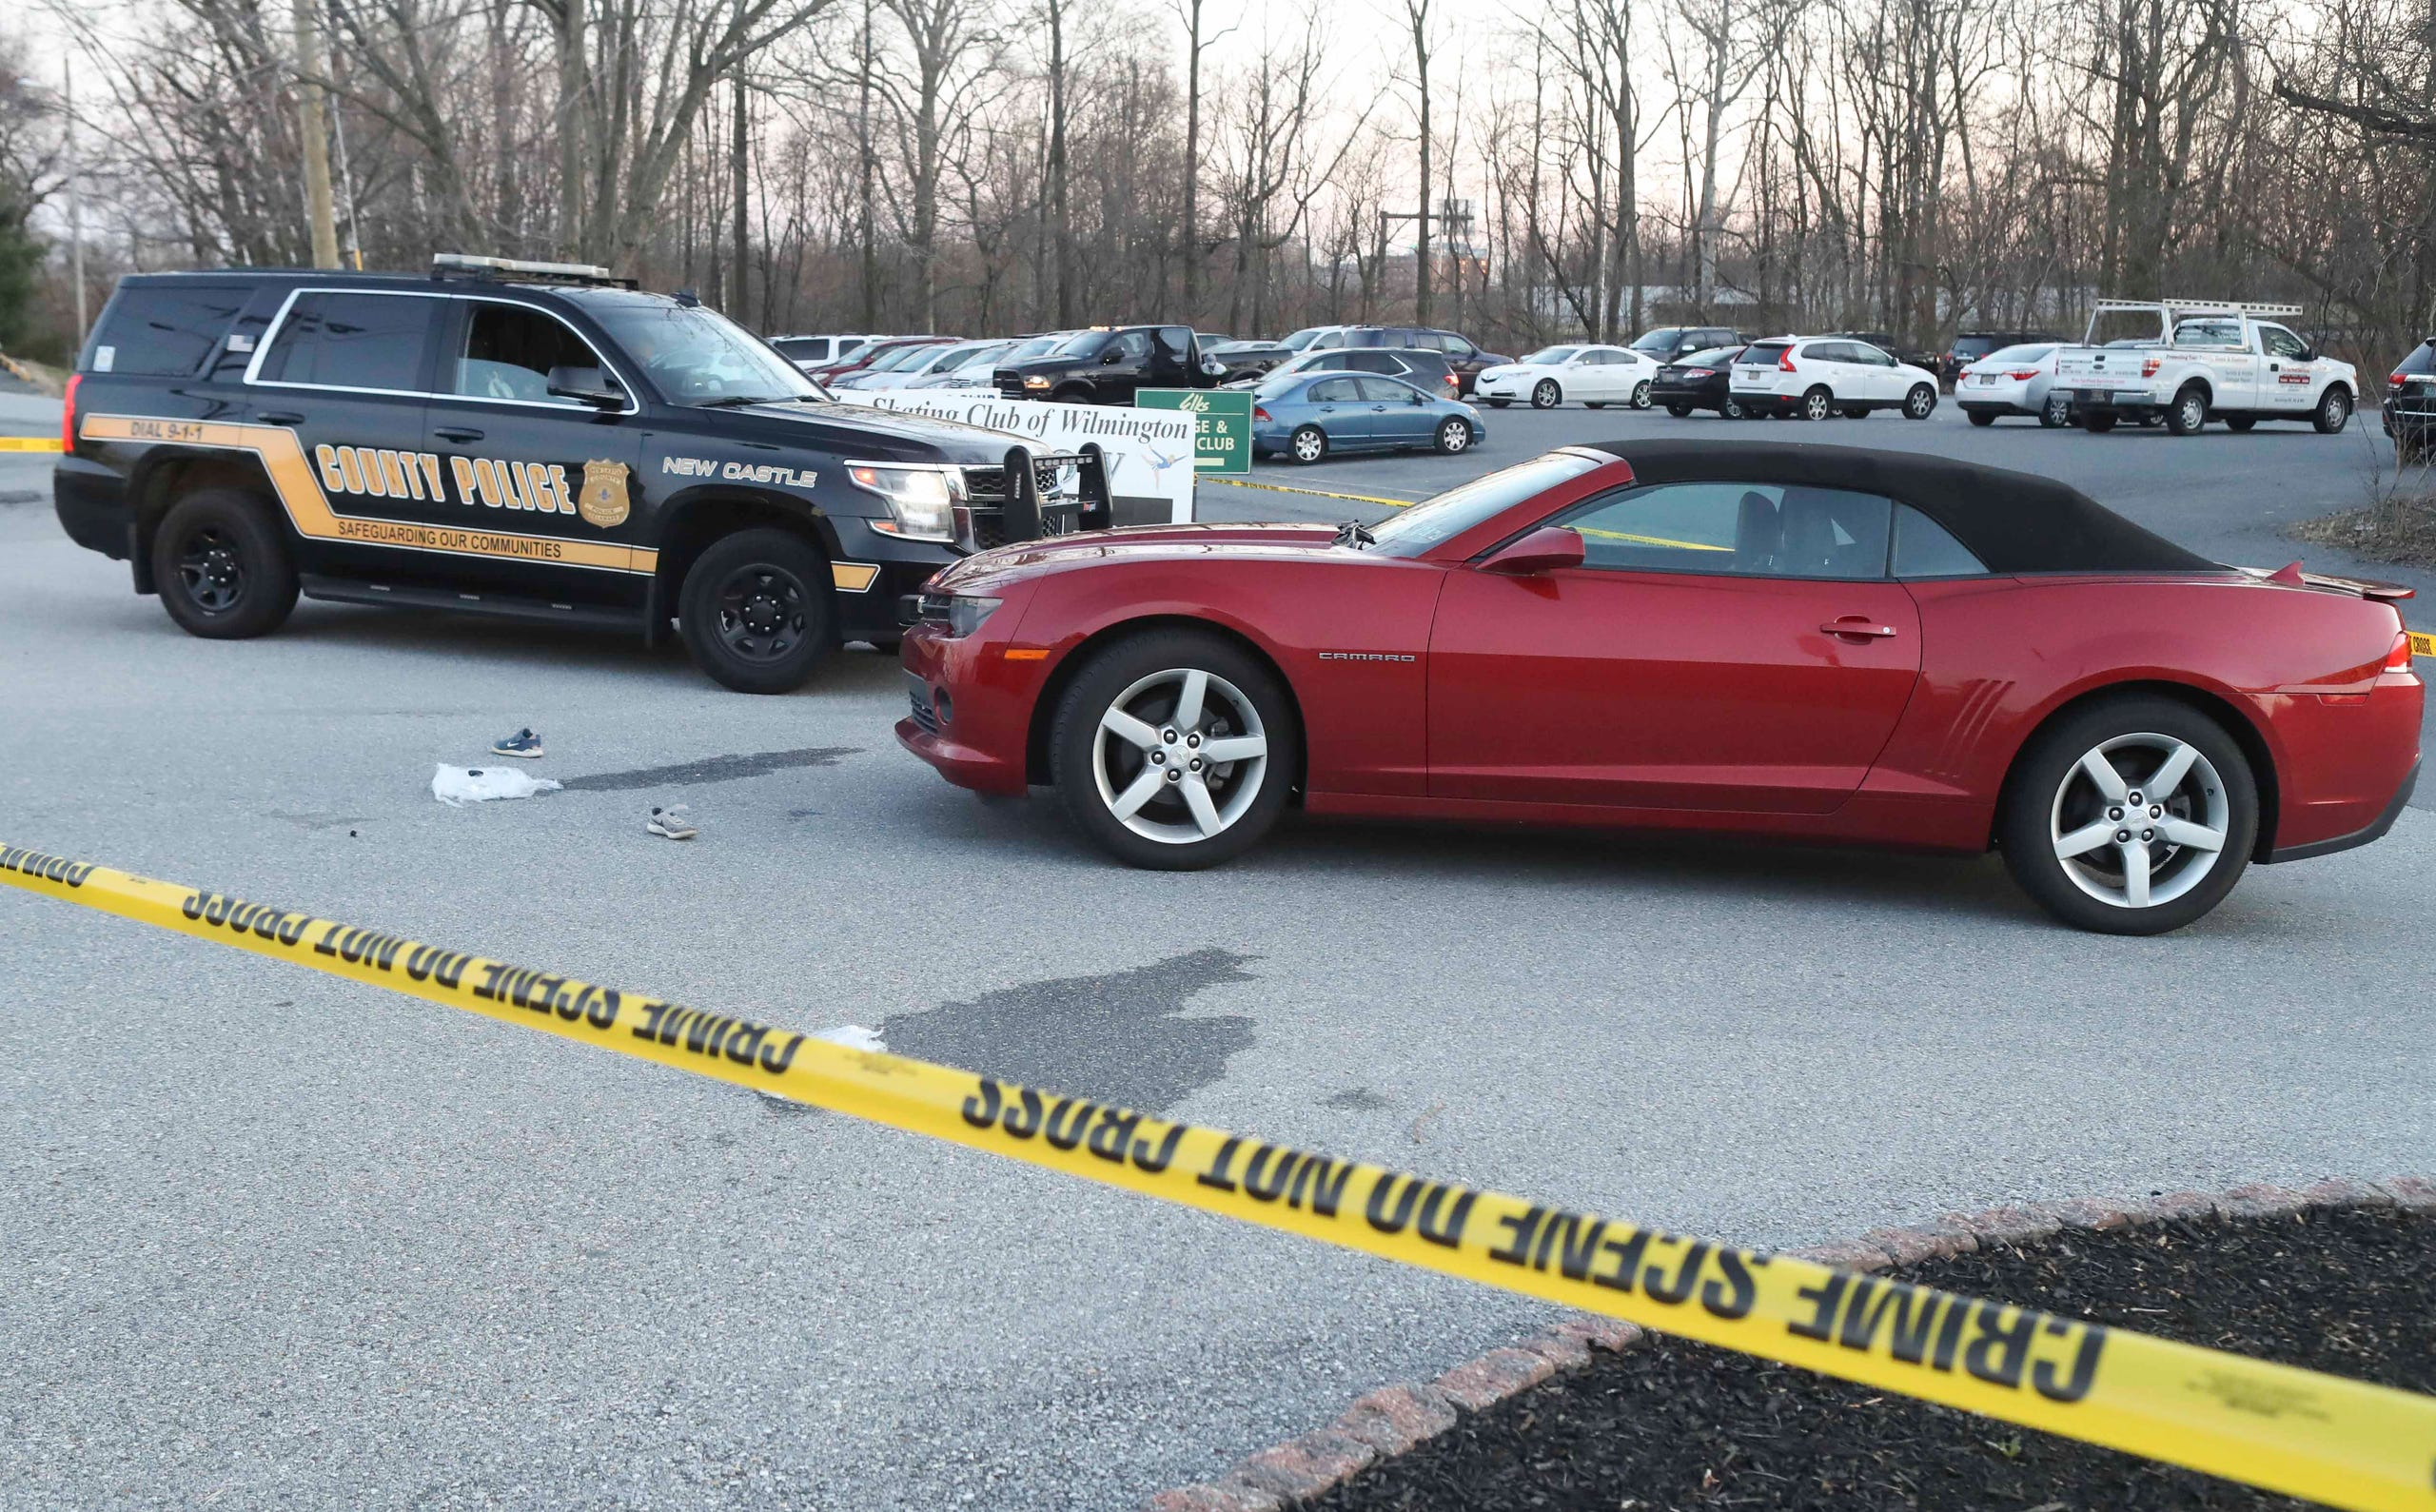 Three hurt in golf course parking lot accident